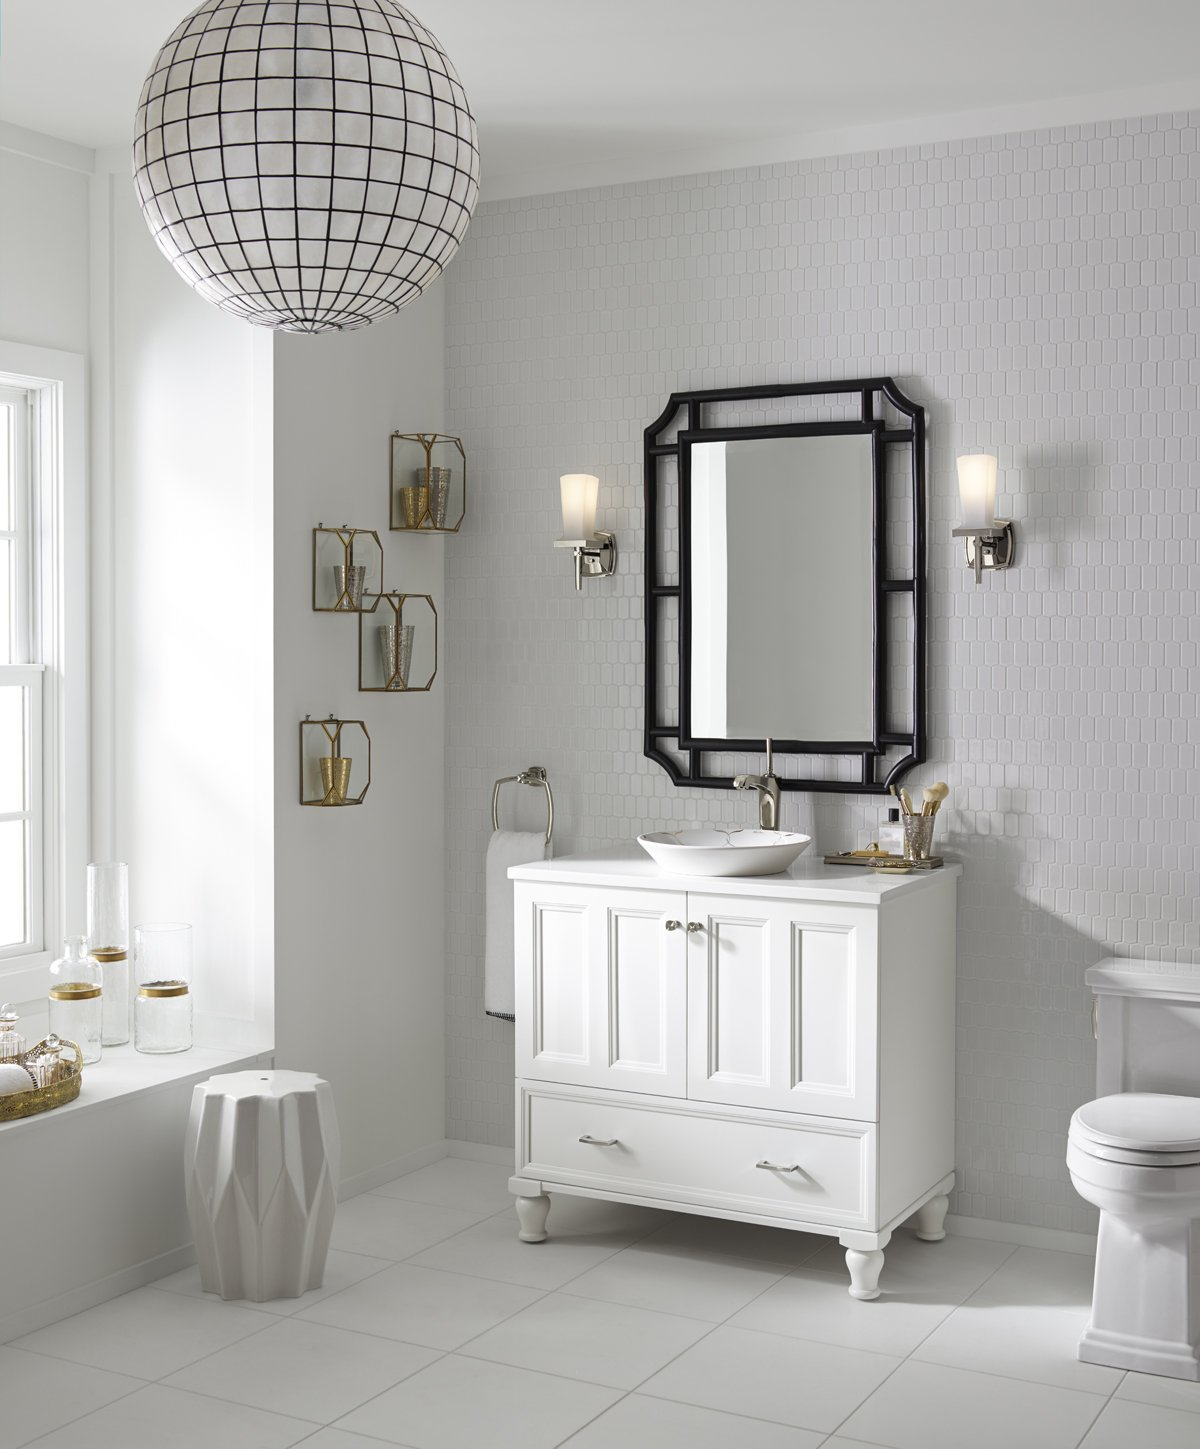 KOHLER K-99519-LG-1WA Damask Vanity with Furniture Legs and 2 Doors and 1 Drawer, 36-Inch, Linen White - Combines with Solid/Expressions(TM) and Ceramic/Impressions(TM) vanity tops (sold separately) for a complete vanity Frameless construction with full-overlay doors Three-way adjustable slow-close door hinges with 110-degree opening capability for easy cabinet access - bathroom-vanities, bathroom-fixtures-hardware, bathroom - 71b5cP47AXL -